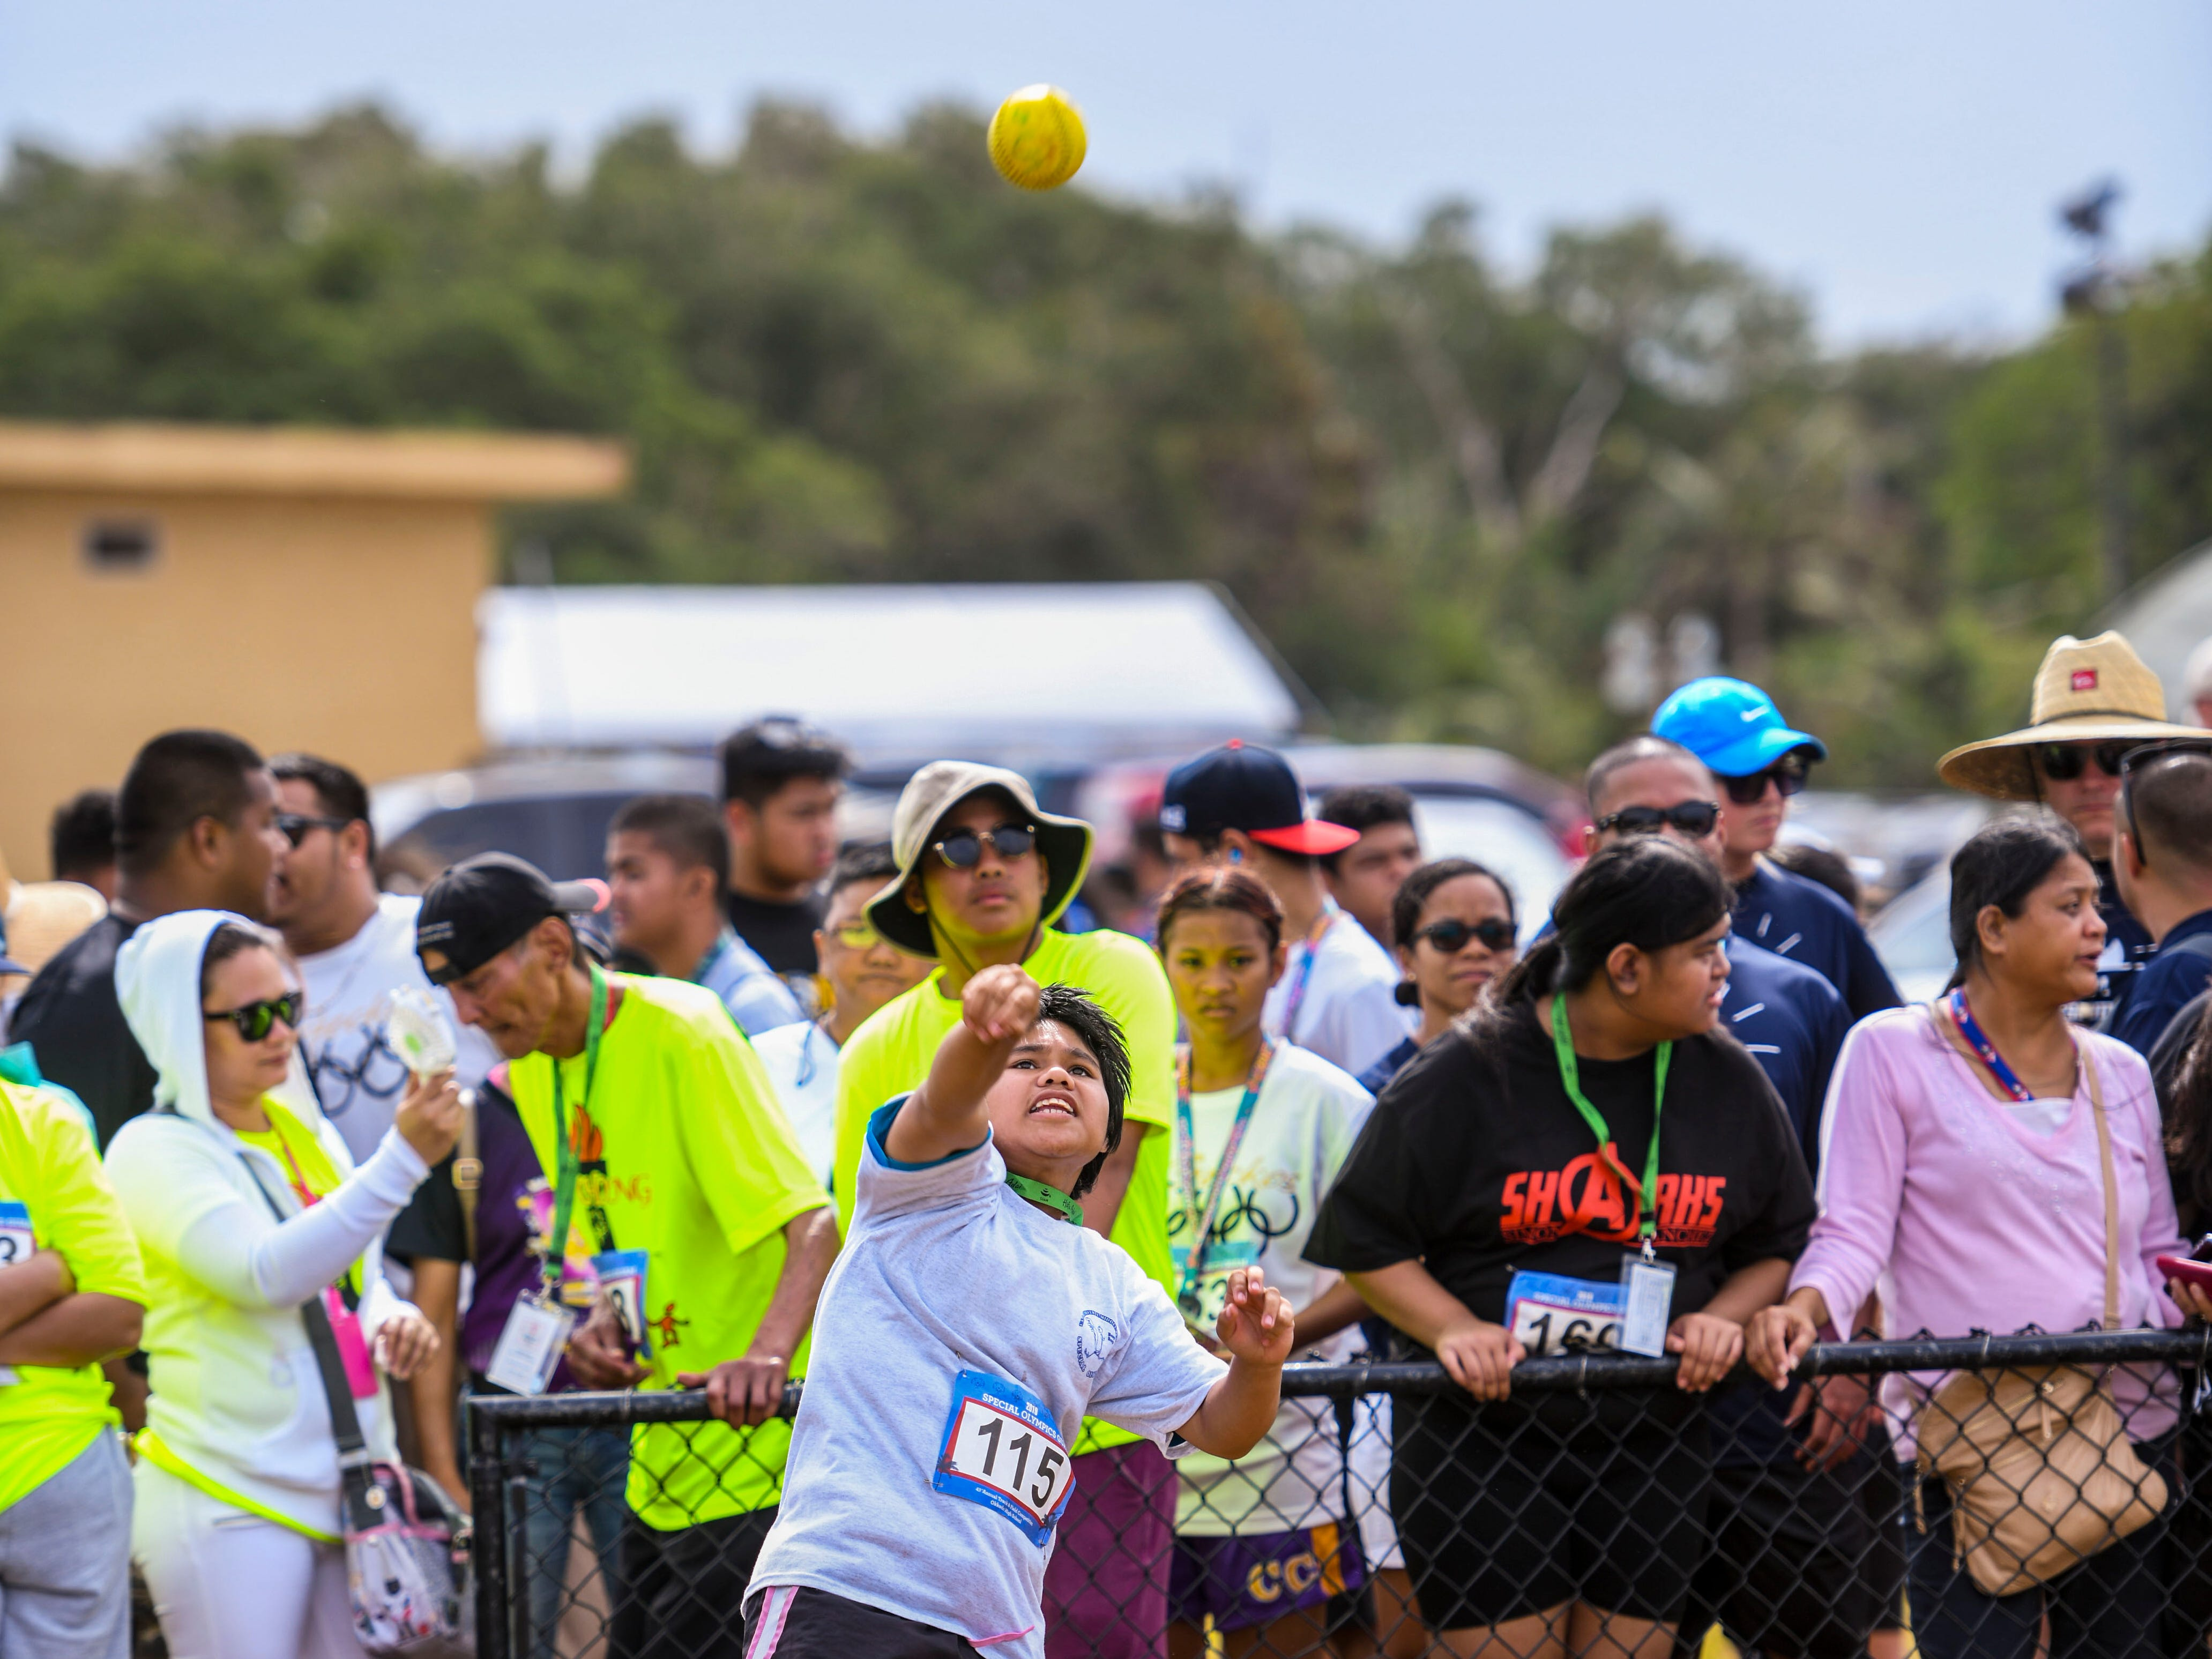 Special Olympian Cristine Alfonso (115) sends a ball skyward during her participation in the softball throw event during the 43rd Special Olympics Guam Track & Field competition at Okkodo High School in Dededo on Saturday, March 16, 2019.